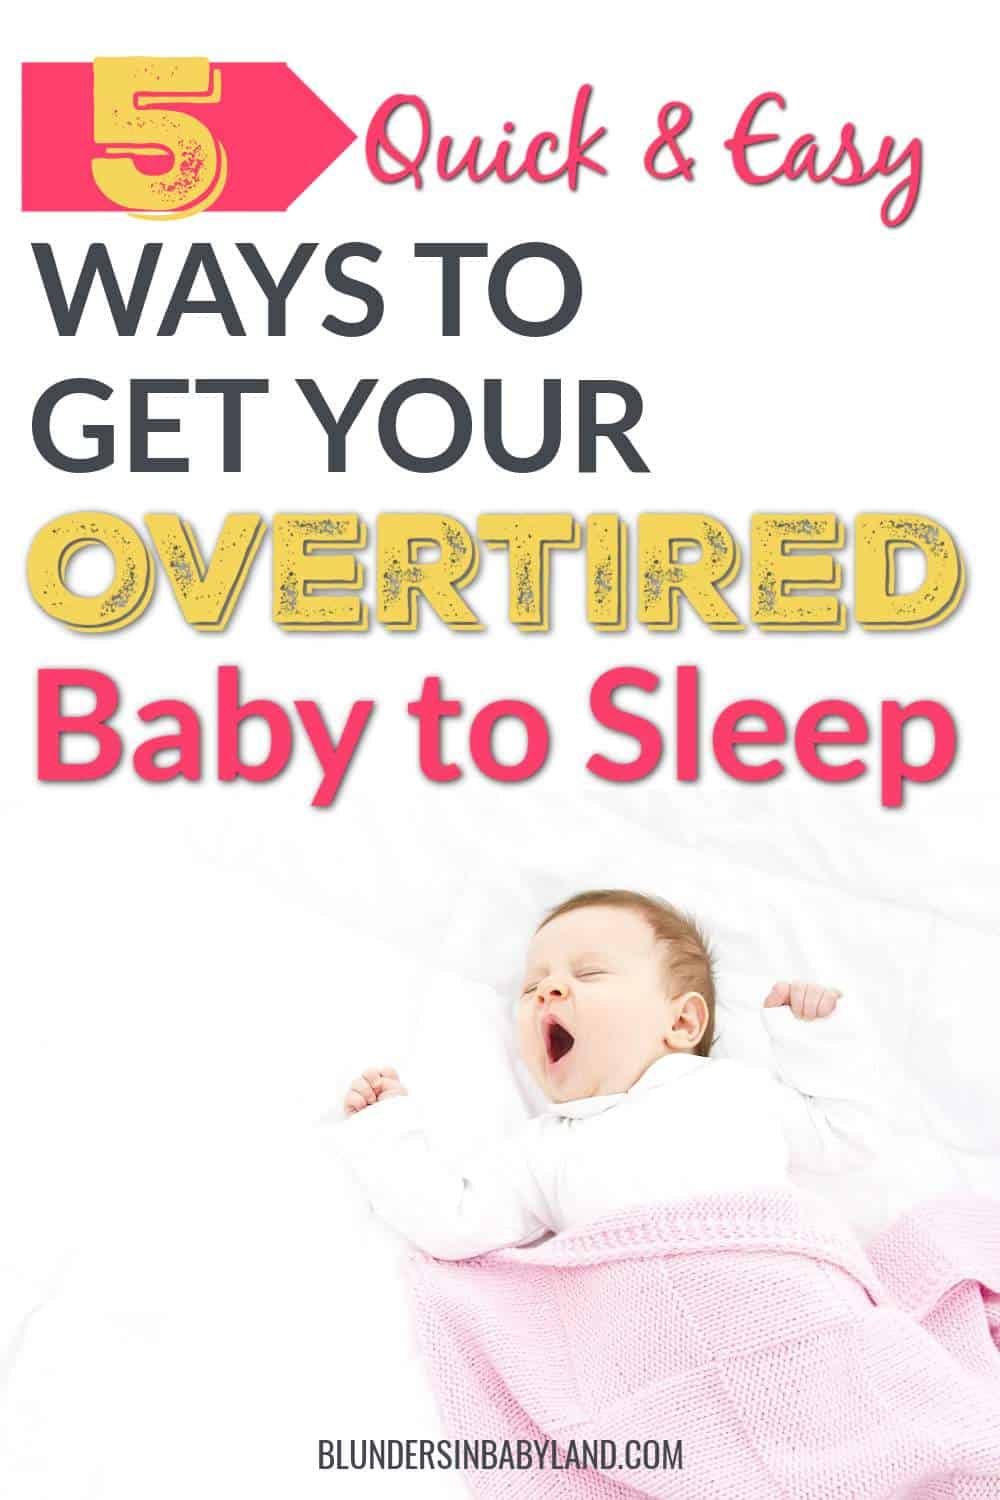 How to Get an Over Tired Baby to Sleep - How to Break the Cycle of an Overtired Baby